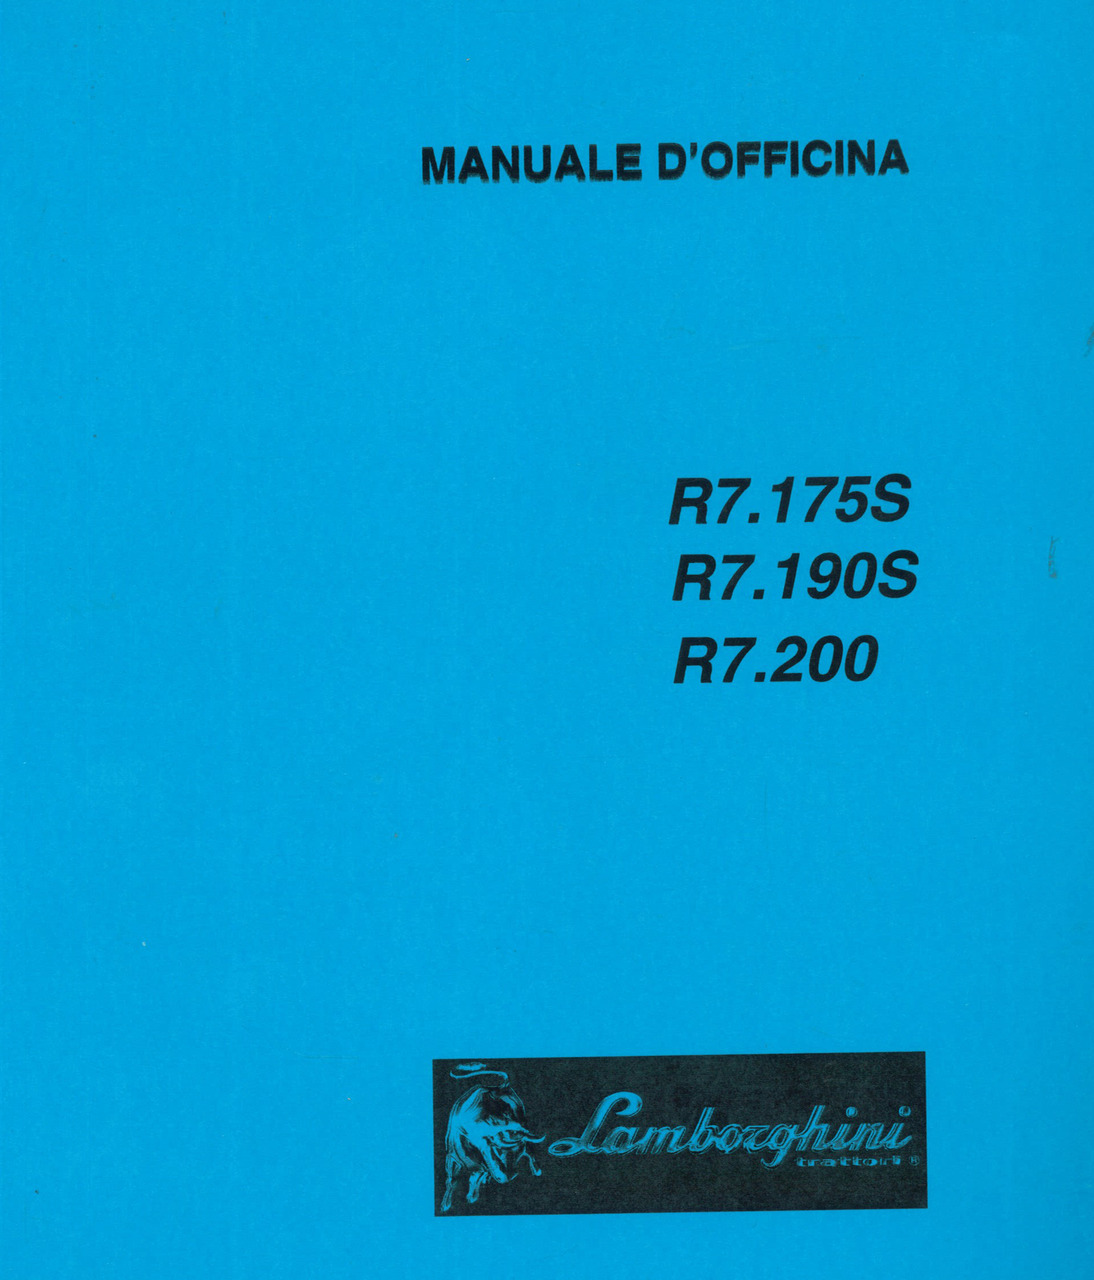 R7.175 S - R7.190 S - R7.200 - Manuale d'officina